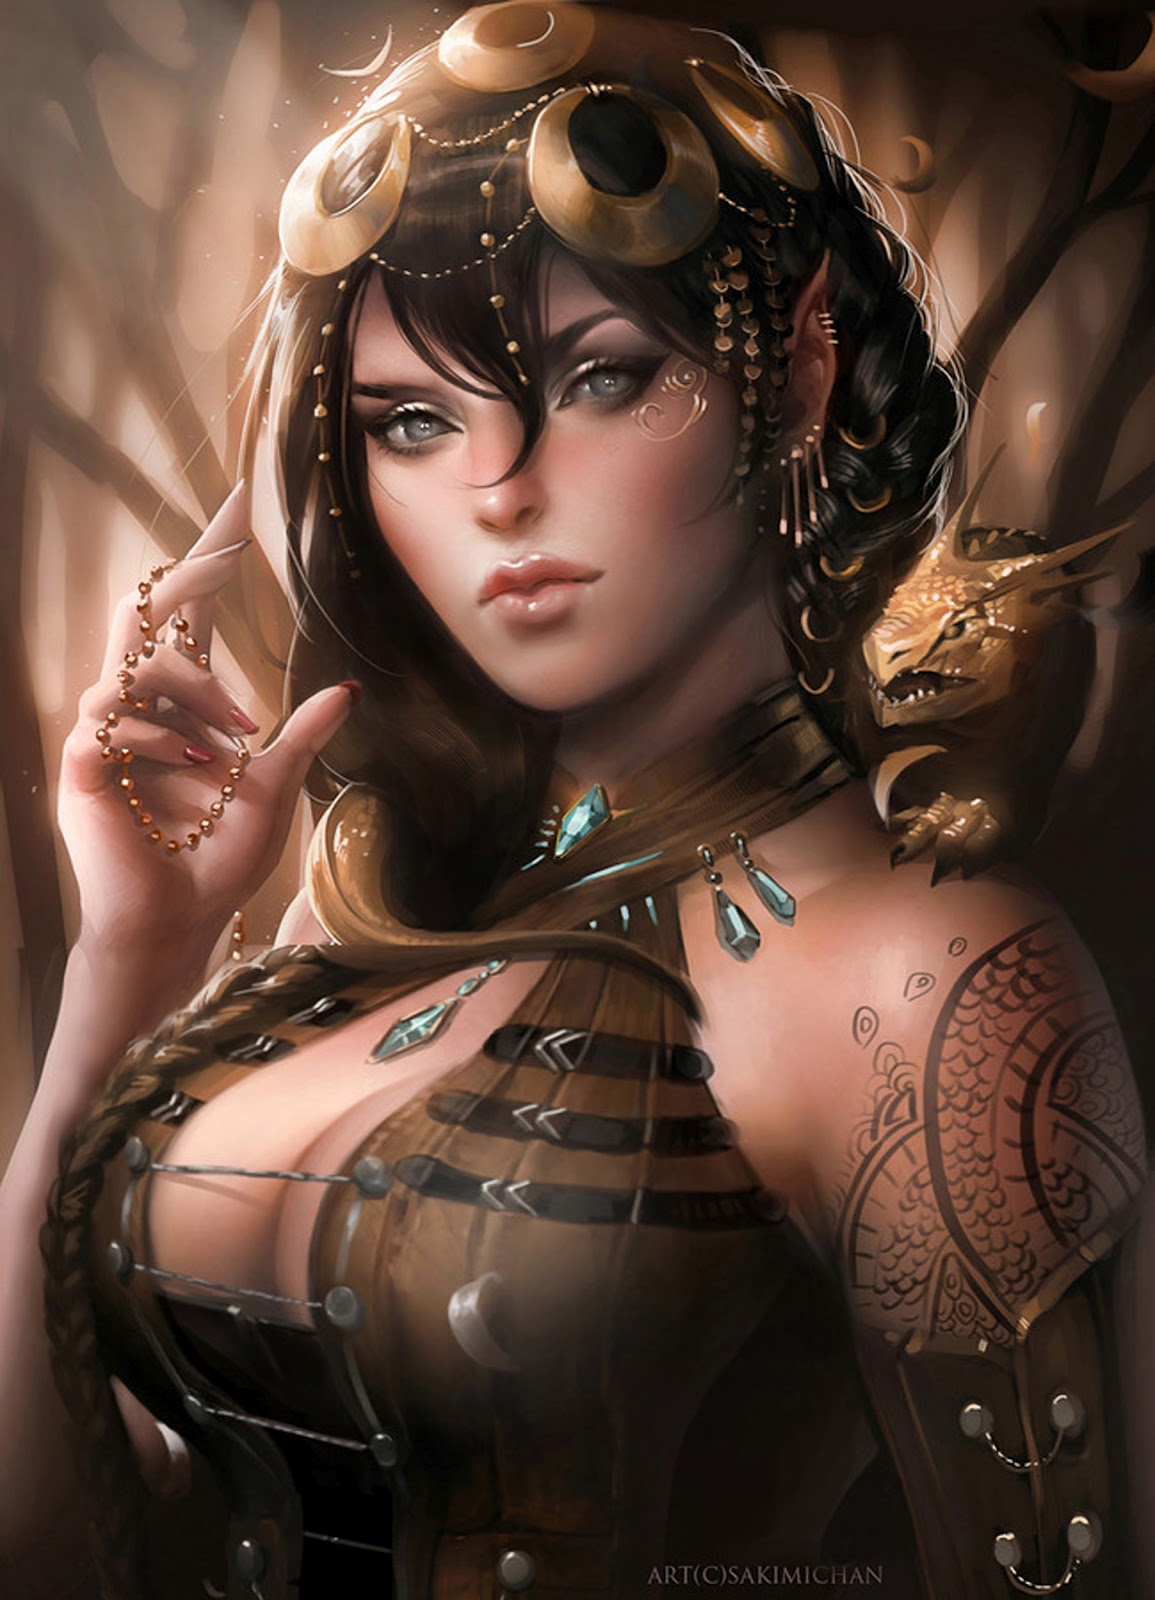 star+trek+sexy+female+alien+big+boobs+dragon+master+tamer+dungeons+sci+fi+fantasy+royal+princess+concept+game+art+by+sakimi+chan.jpg